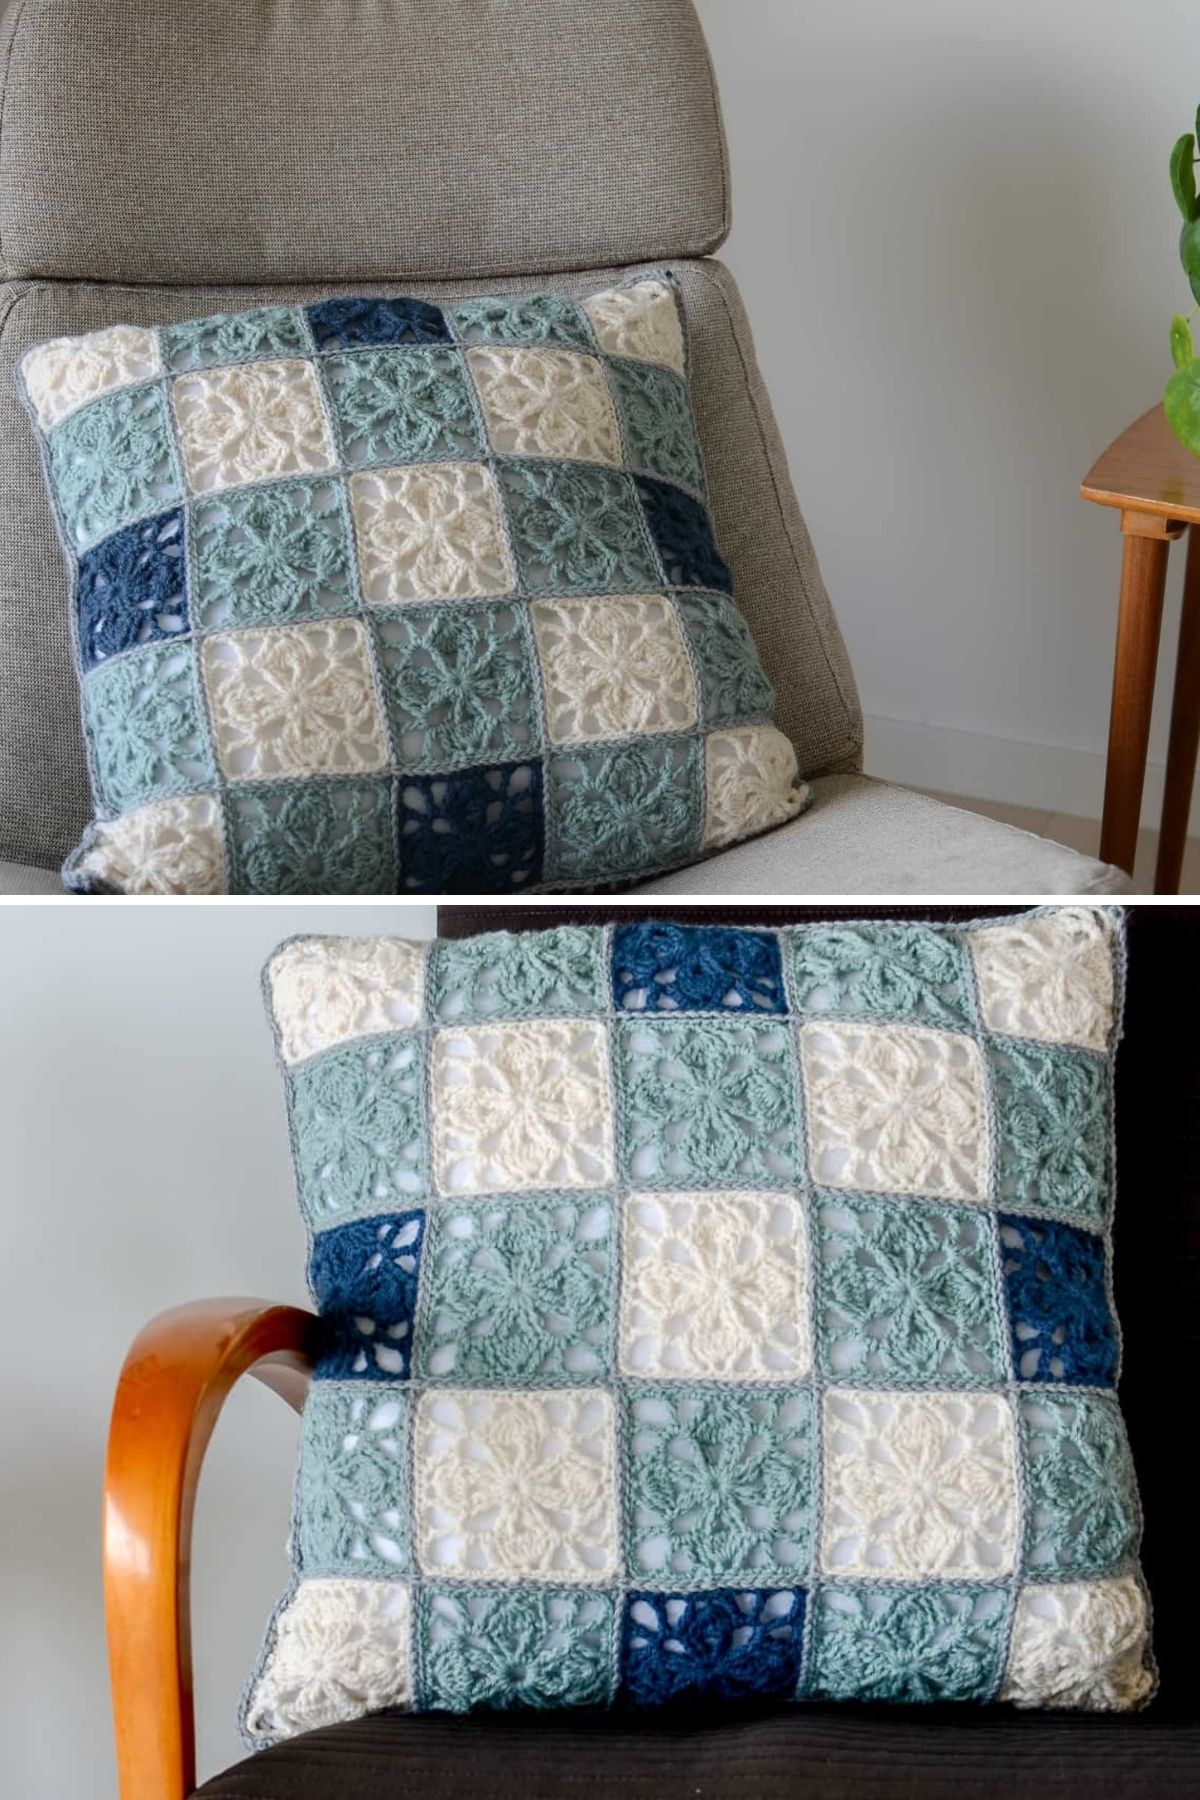 Blue and white granny square pillow on chair